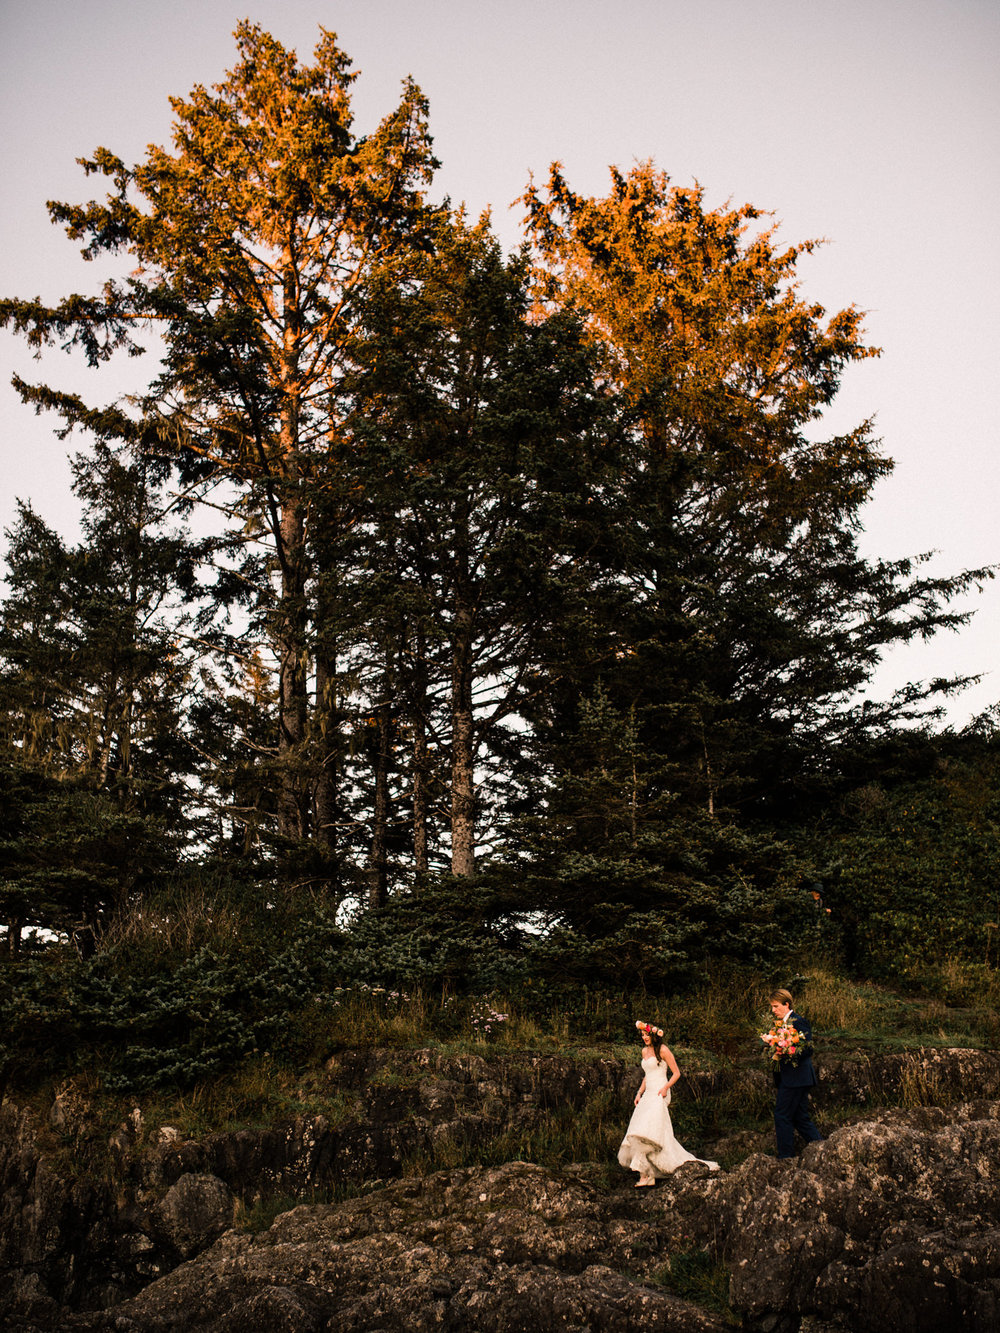 wickaninnish-inn-tofino-bc-elopement-ryan-flynn-photography-00084.JPG